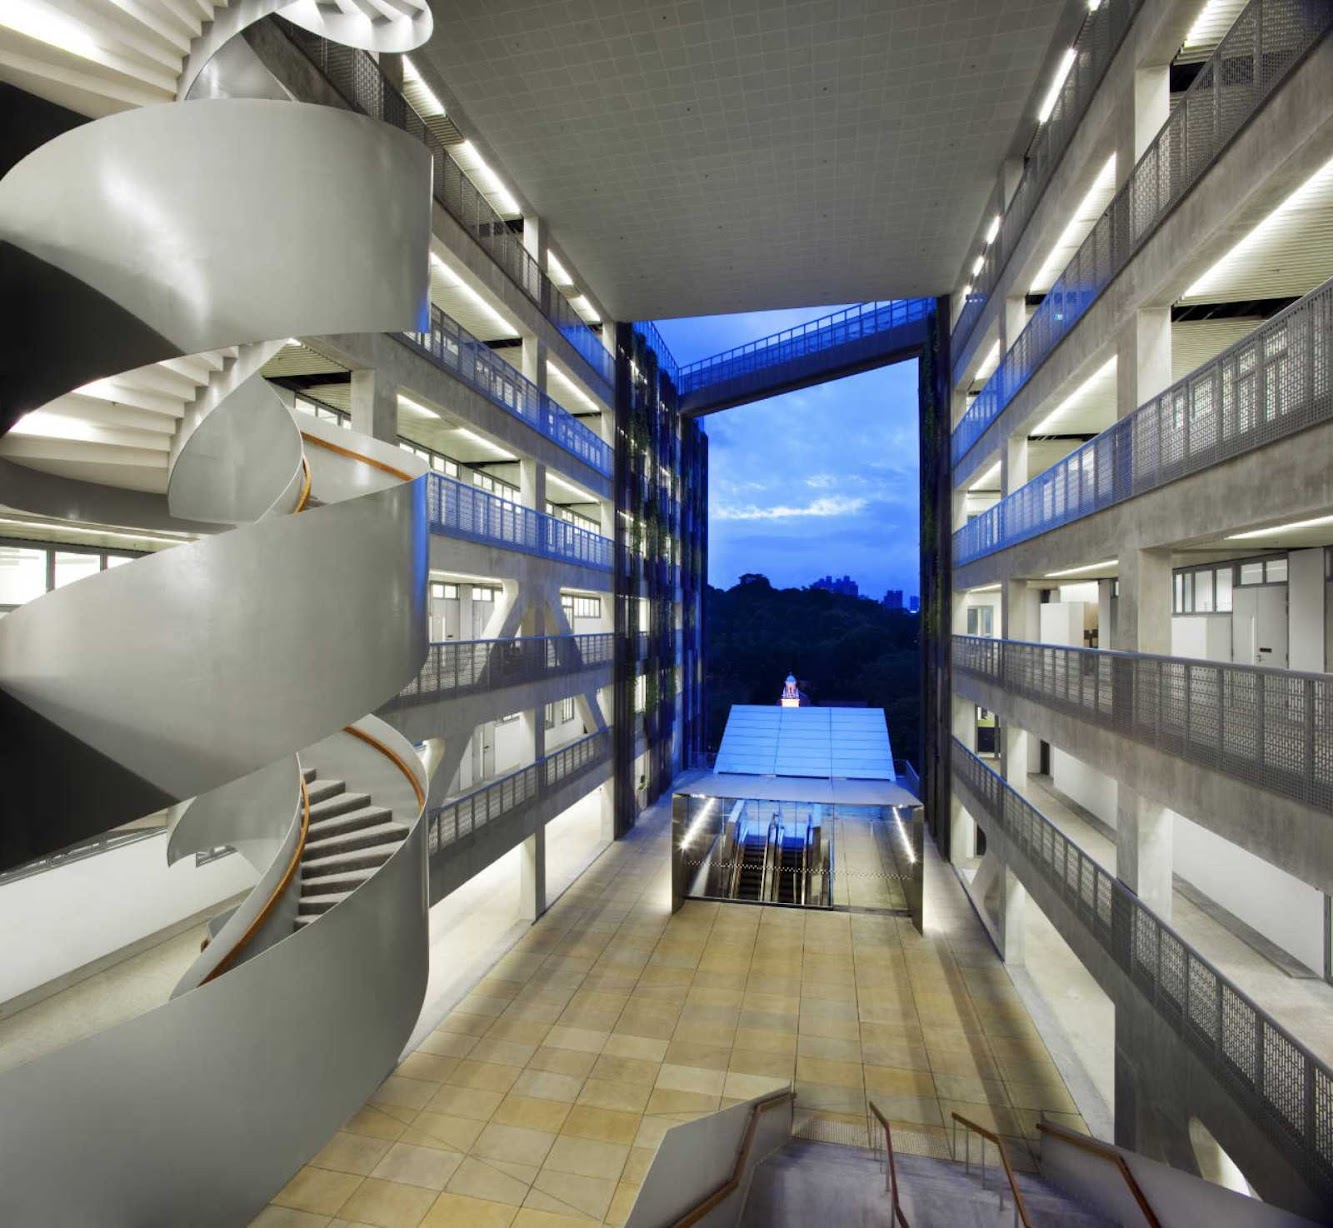 Singapore: School of the Arts by Woha